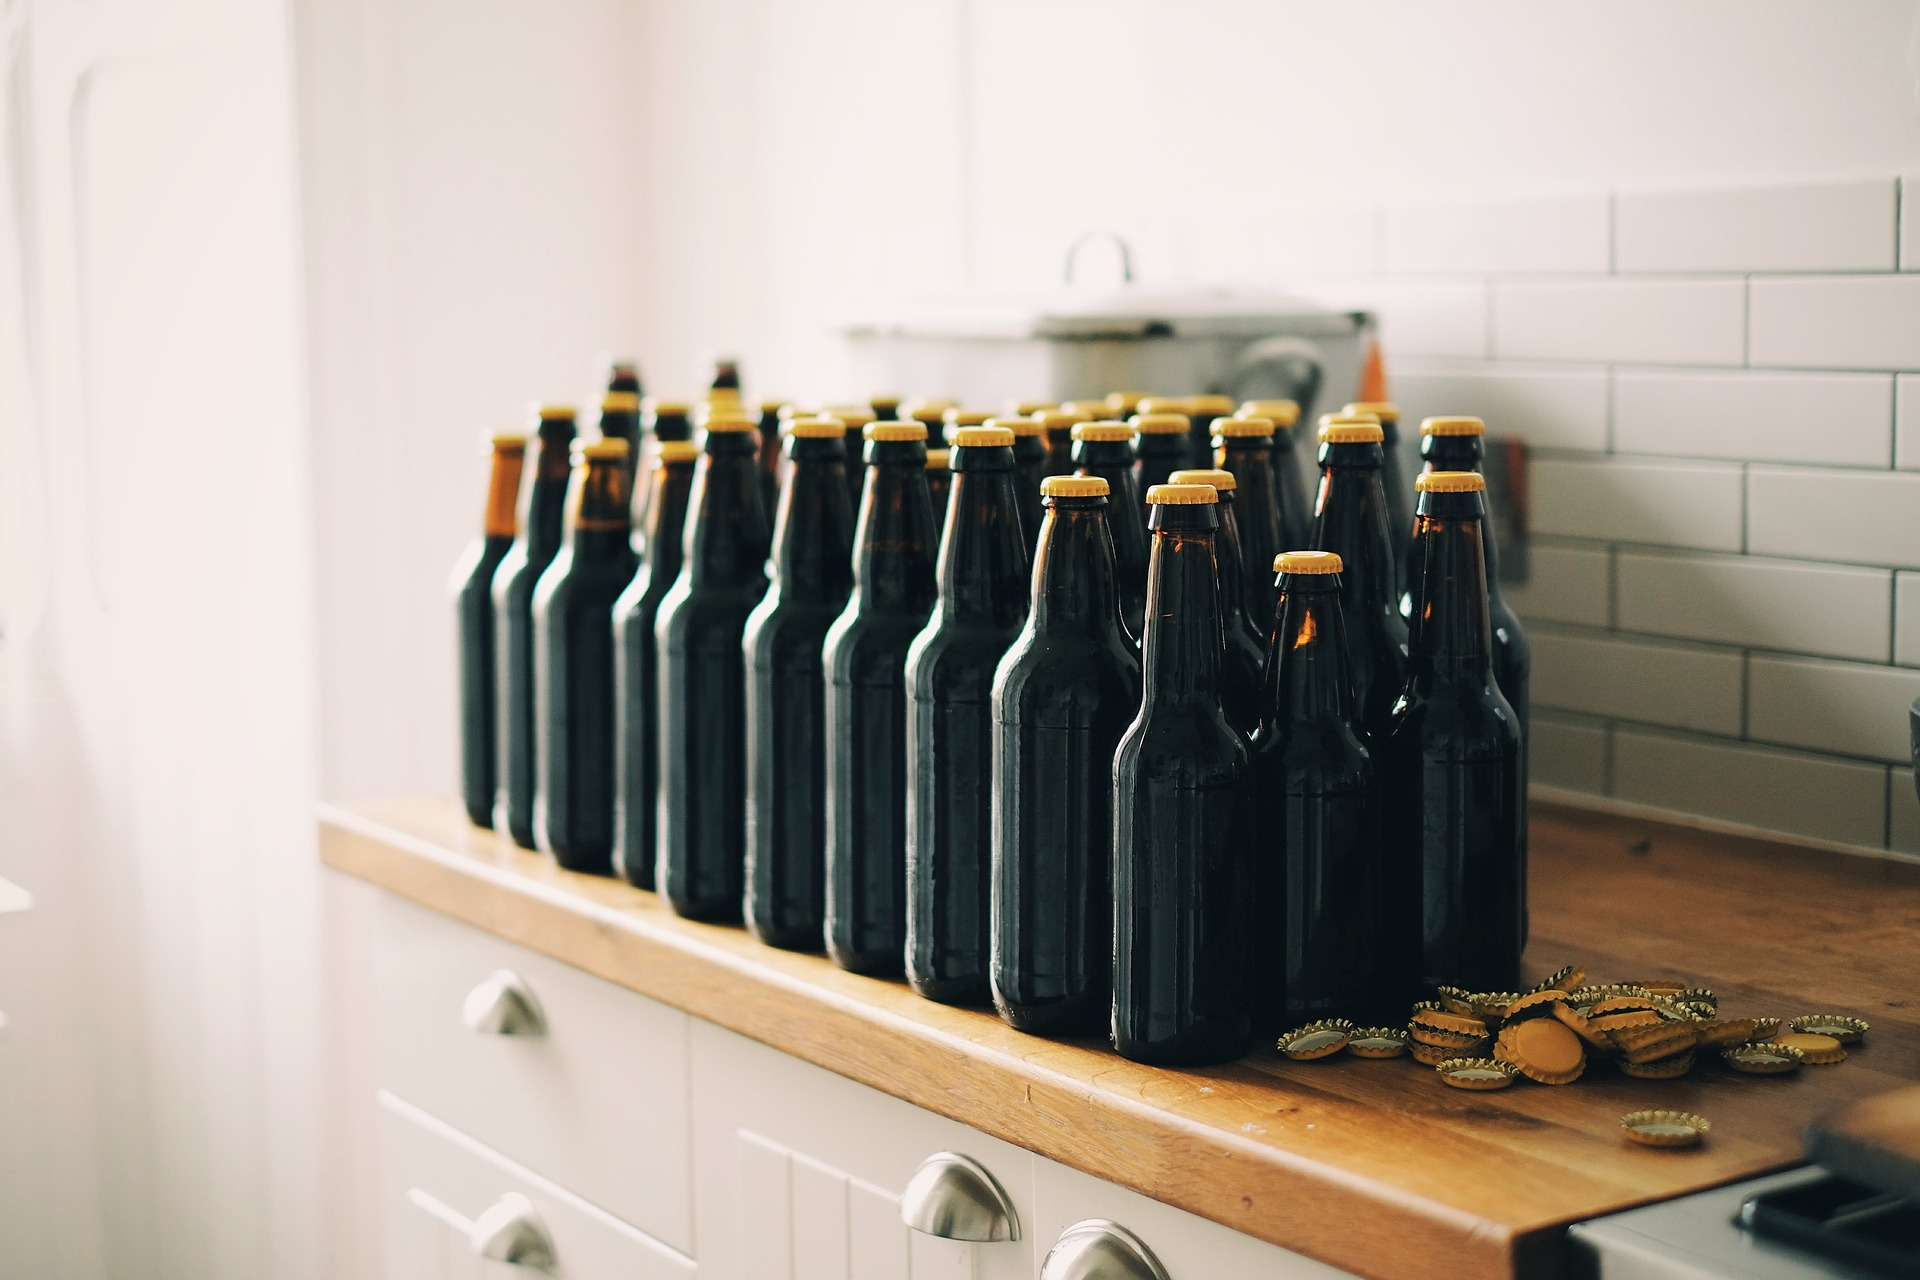 Beer | © Adam Wilson/Unsplash